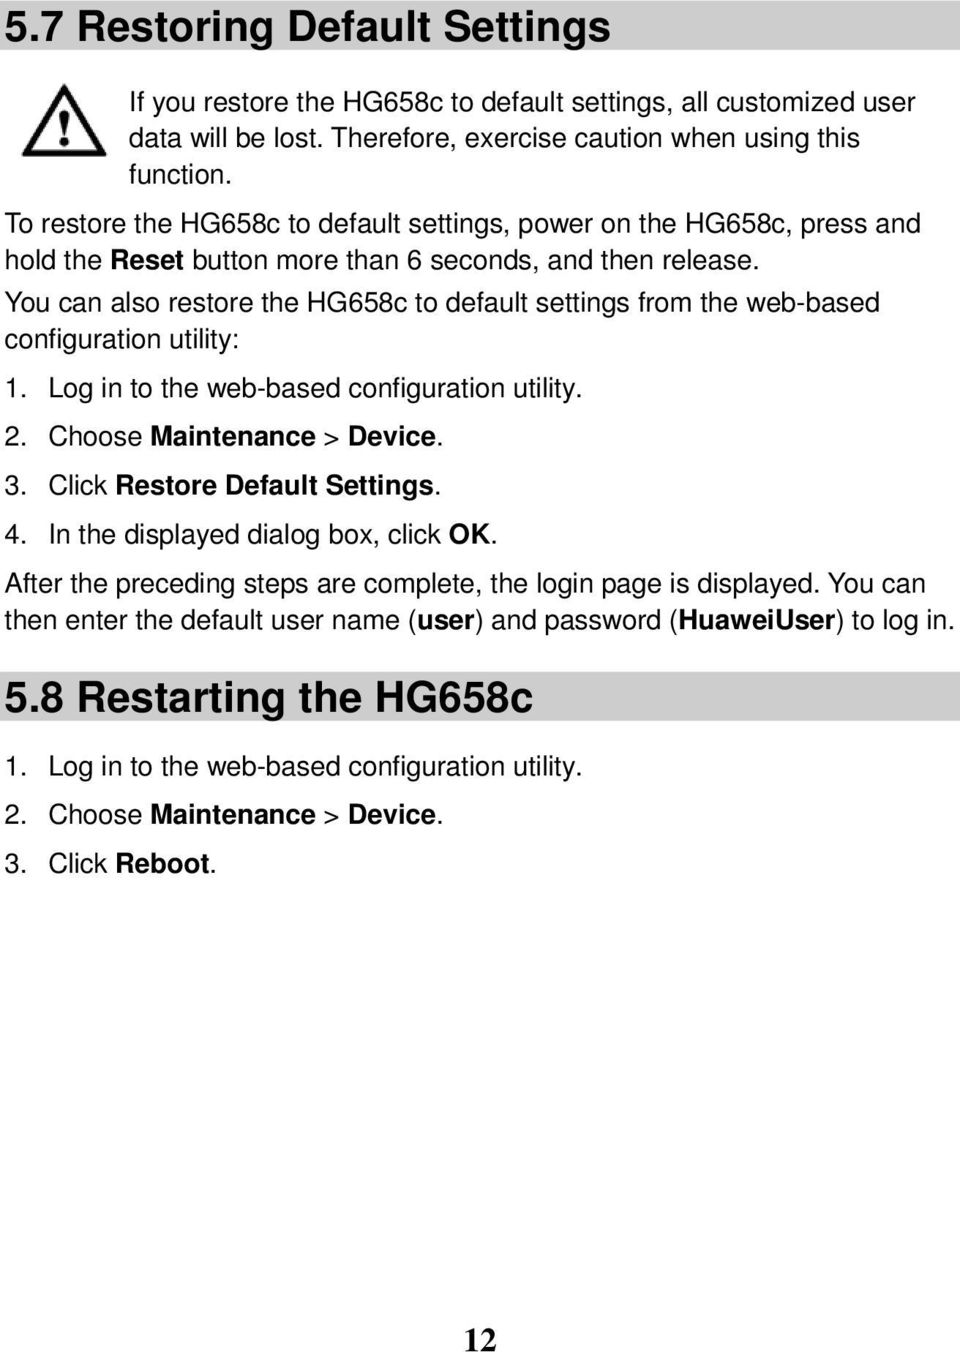 You can also restore the HG658c to default settings from the web-based configuration utility: 1. Log in to the web-based configuration utility. 2. Choose Maintenance > Device. 3.